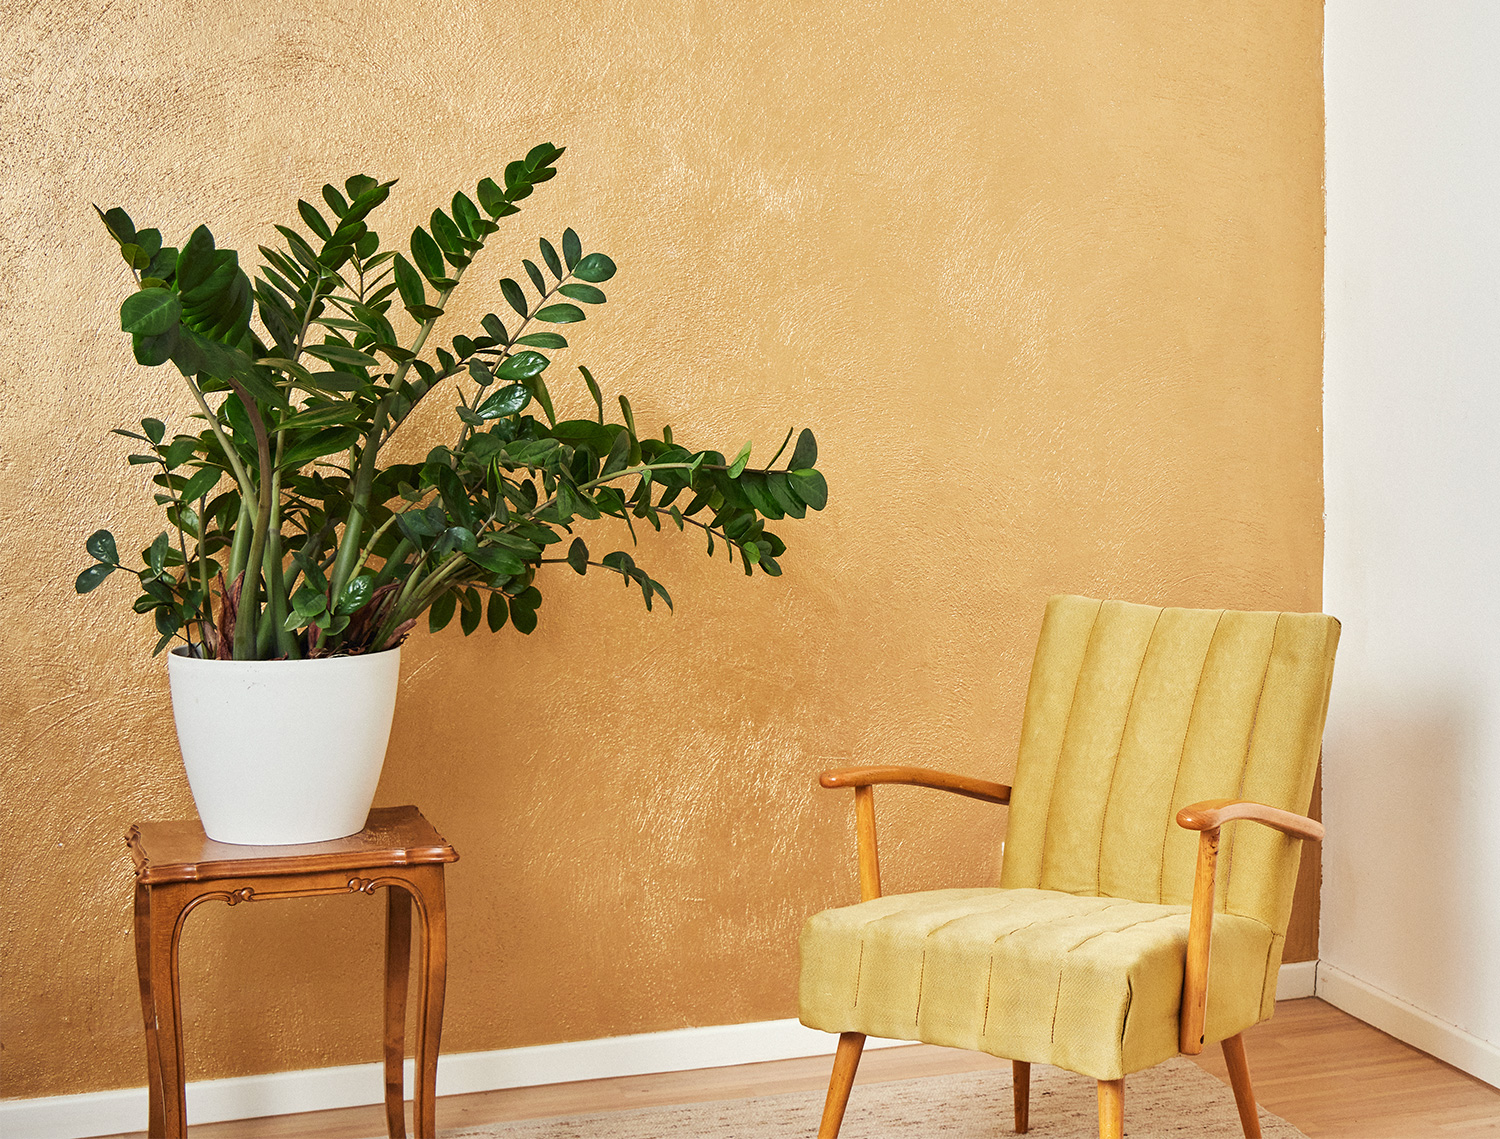 room with a plant and a comfortable chair